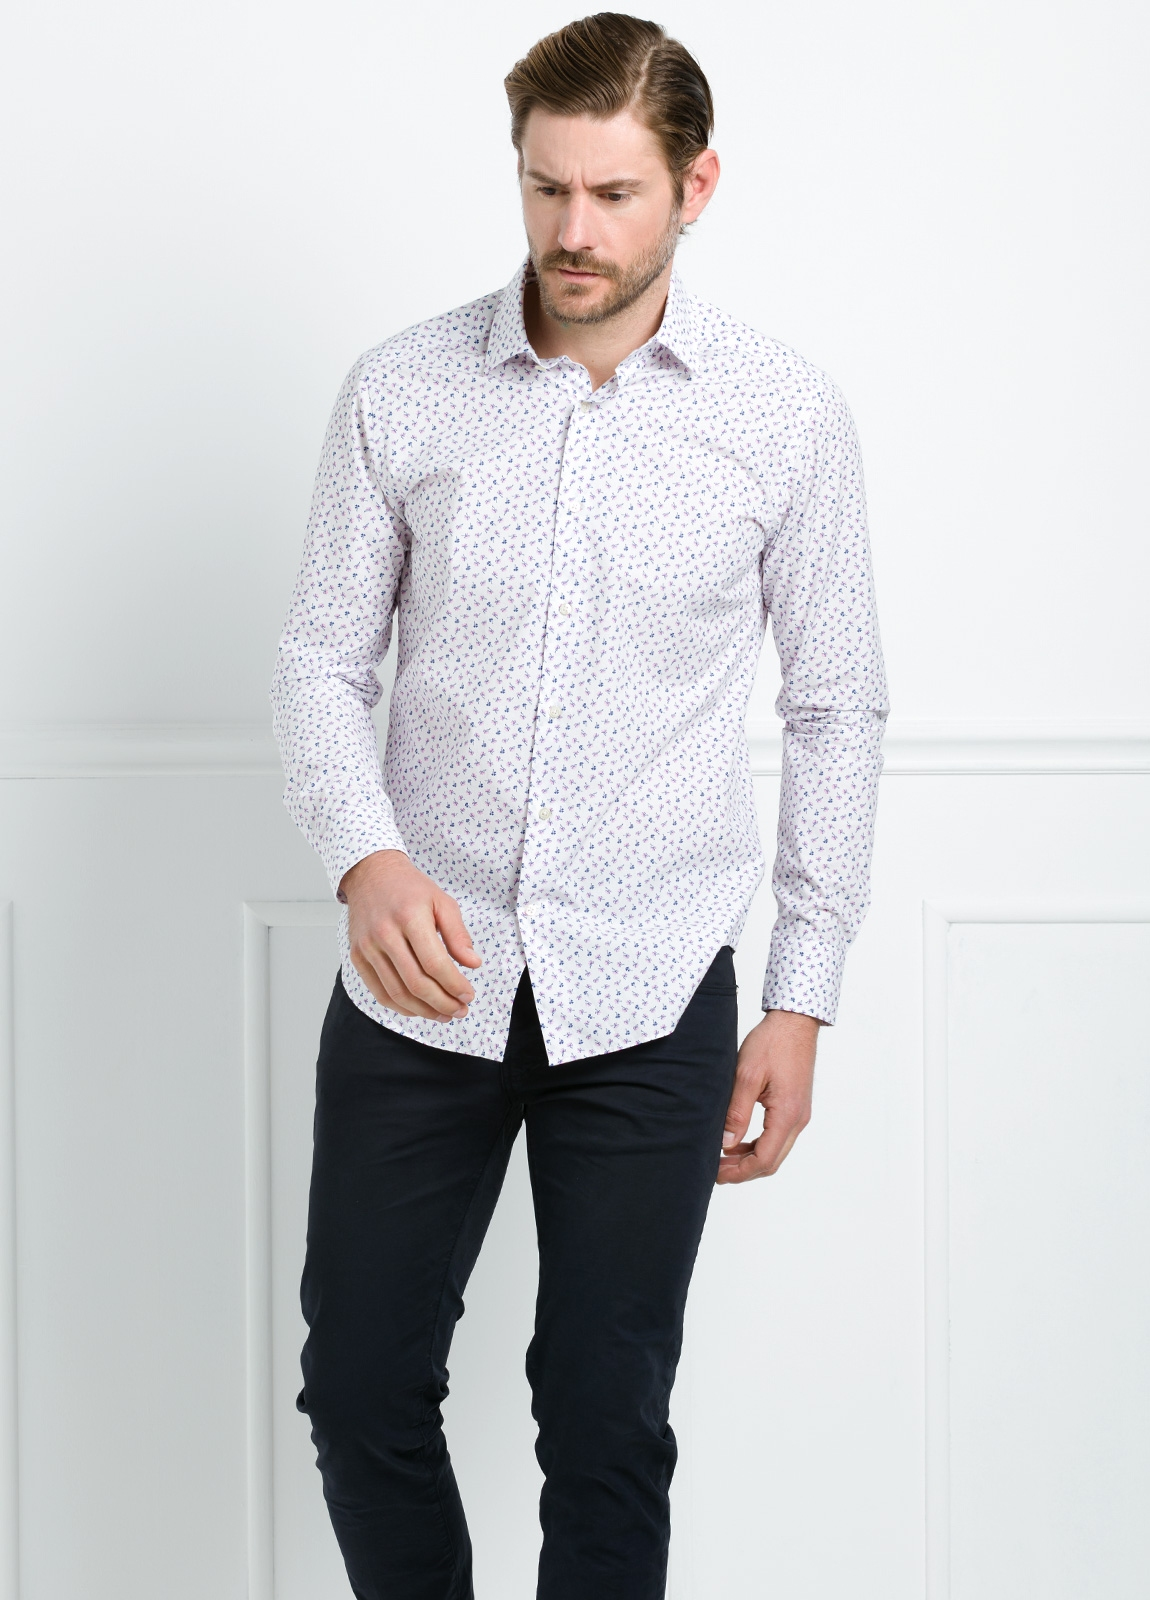 Camisa Leisure Wear REGULAR FIT modelo PORTO estampado floral color blanco. 100% Algodón. - Ítem2